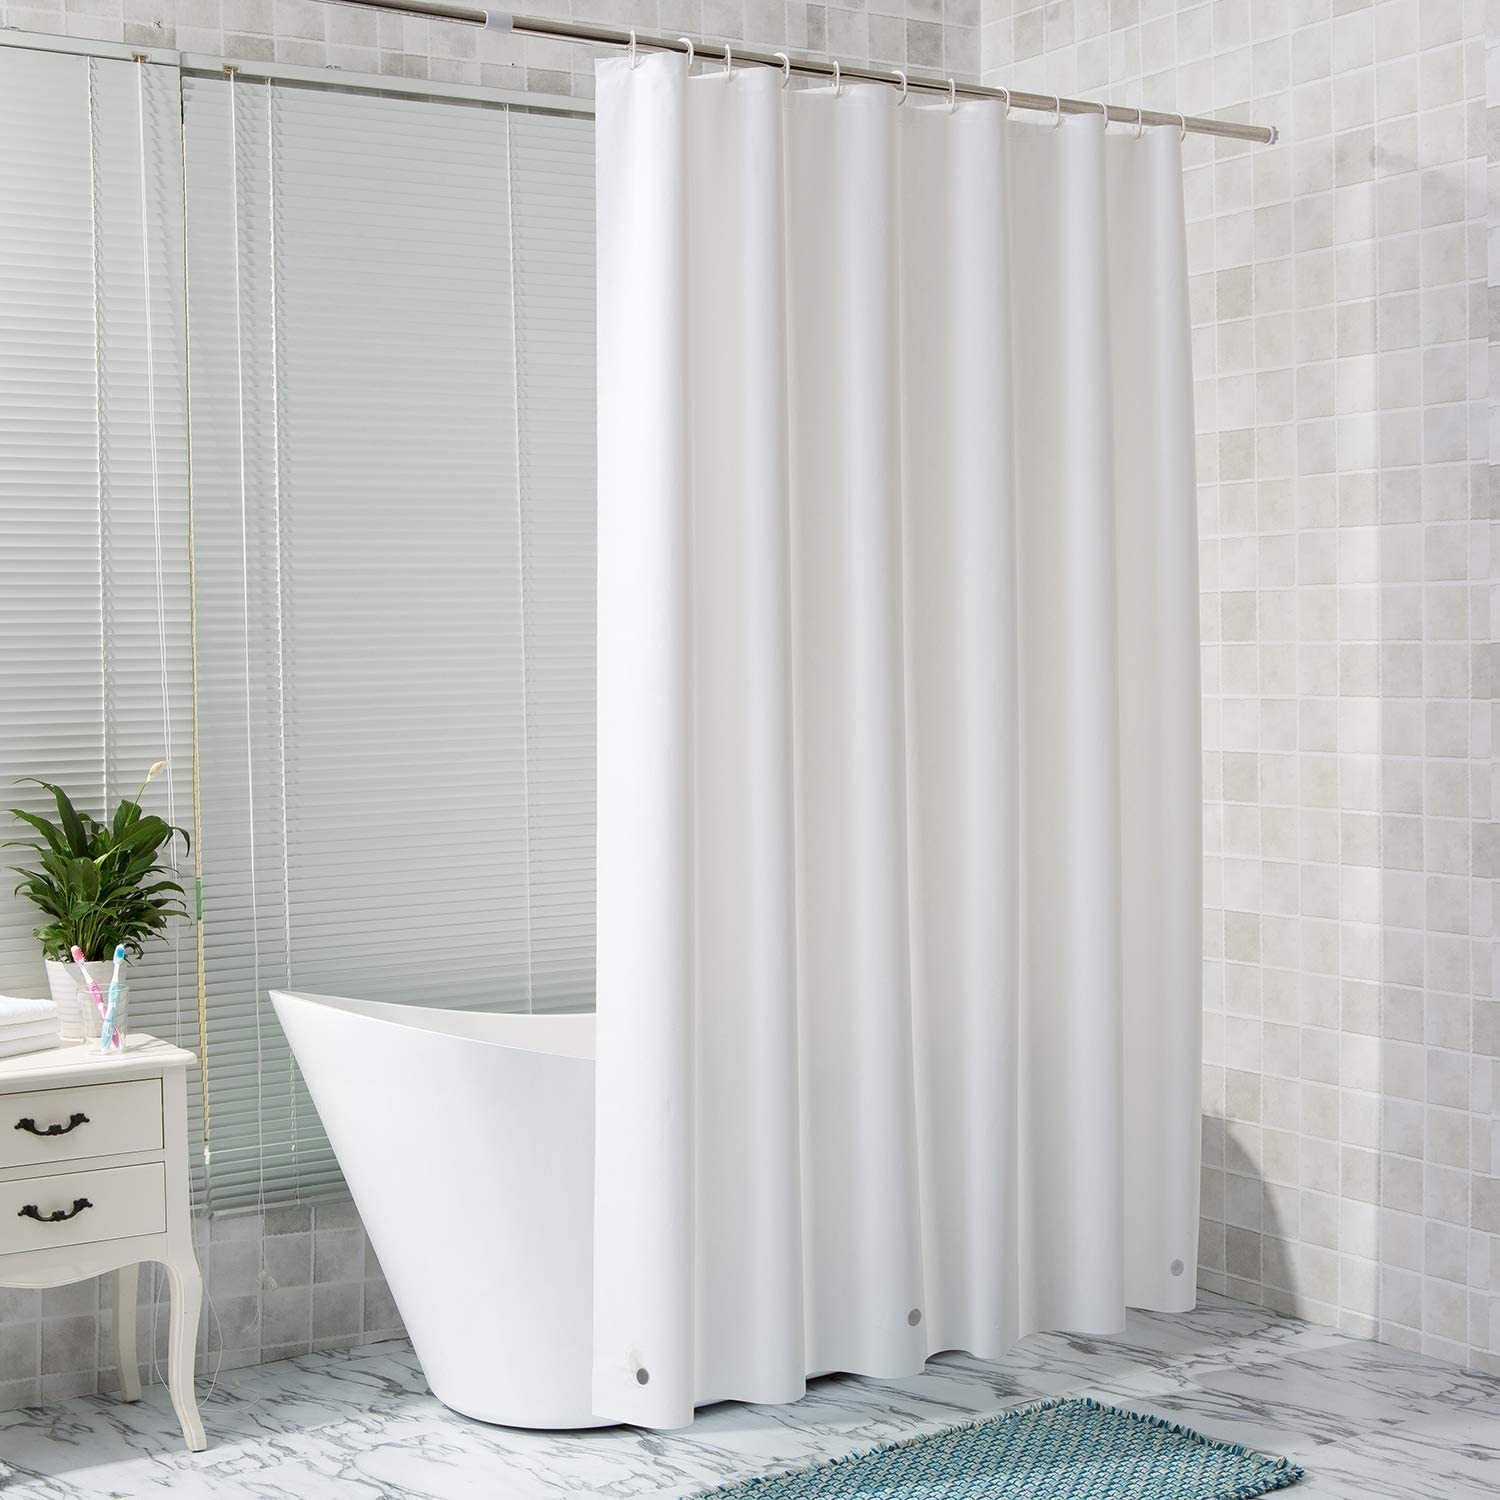 Waterproof and Odorless Bathroom Accessories Clear Shower Curtain Liner with Magnets 72 x 72 in 3D Circle Arcedo Plastic Shower Curtain 8G EVA Shower Liner for Shower Stalls or Tubs